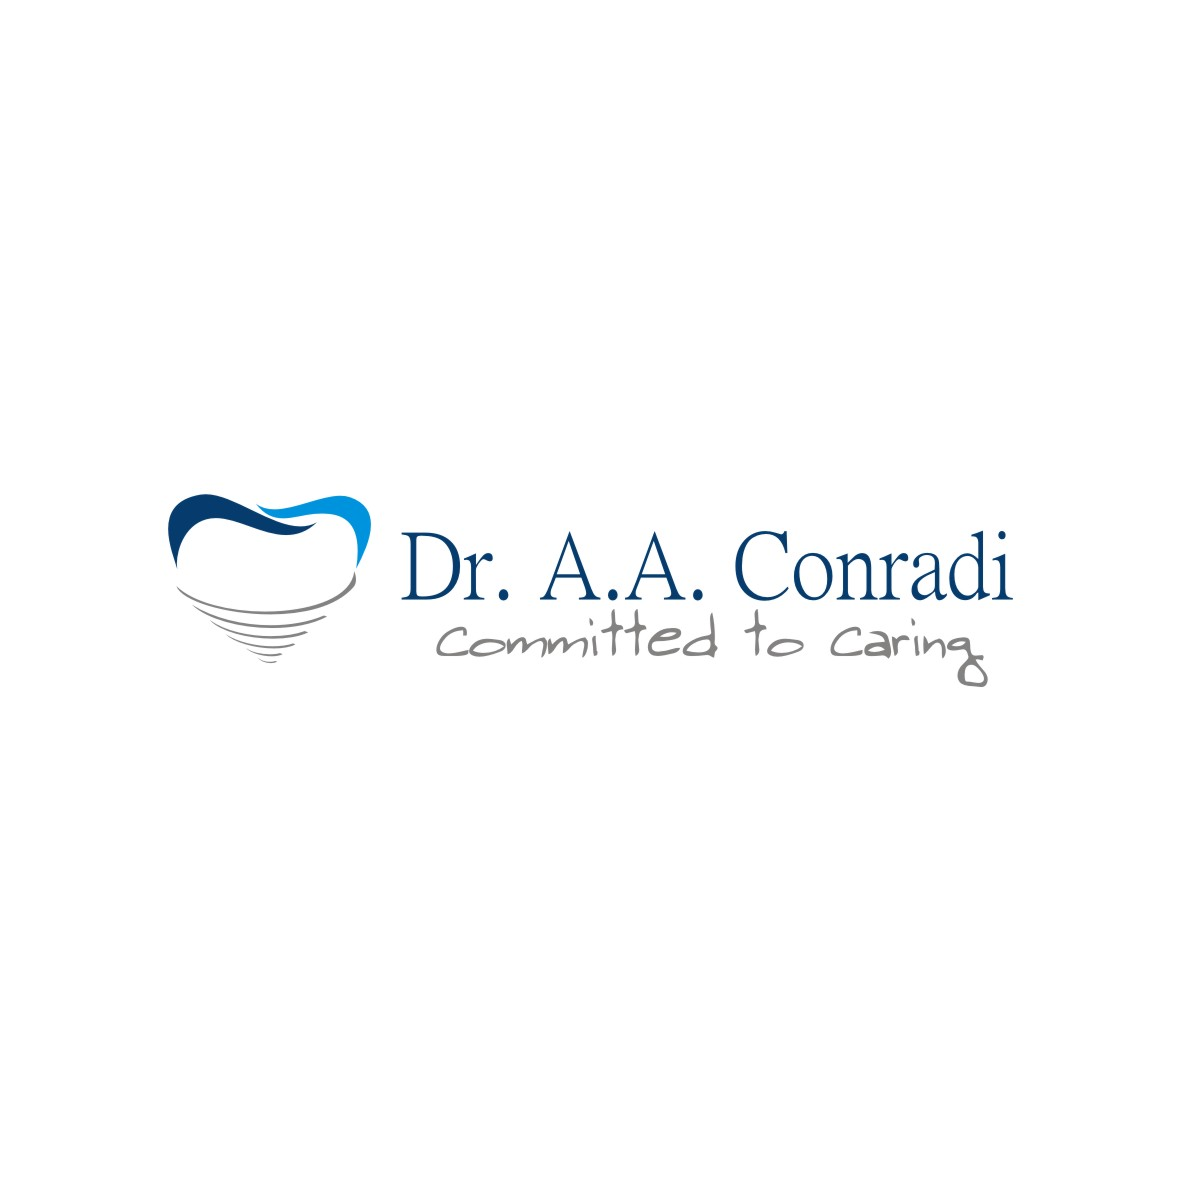 Logo Design by arteo_design - Entry No. 134 in the Logo Design Contest Unique Logo Design Wanted for Dr. A.A. Conradi.